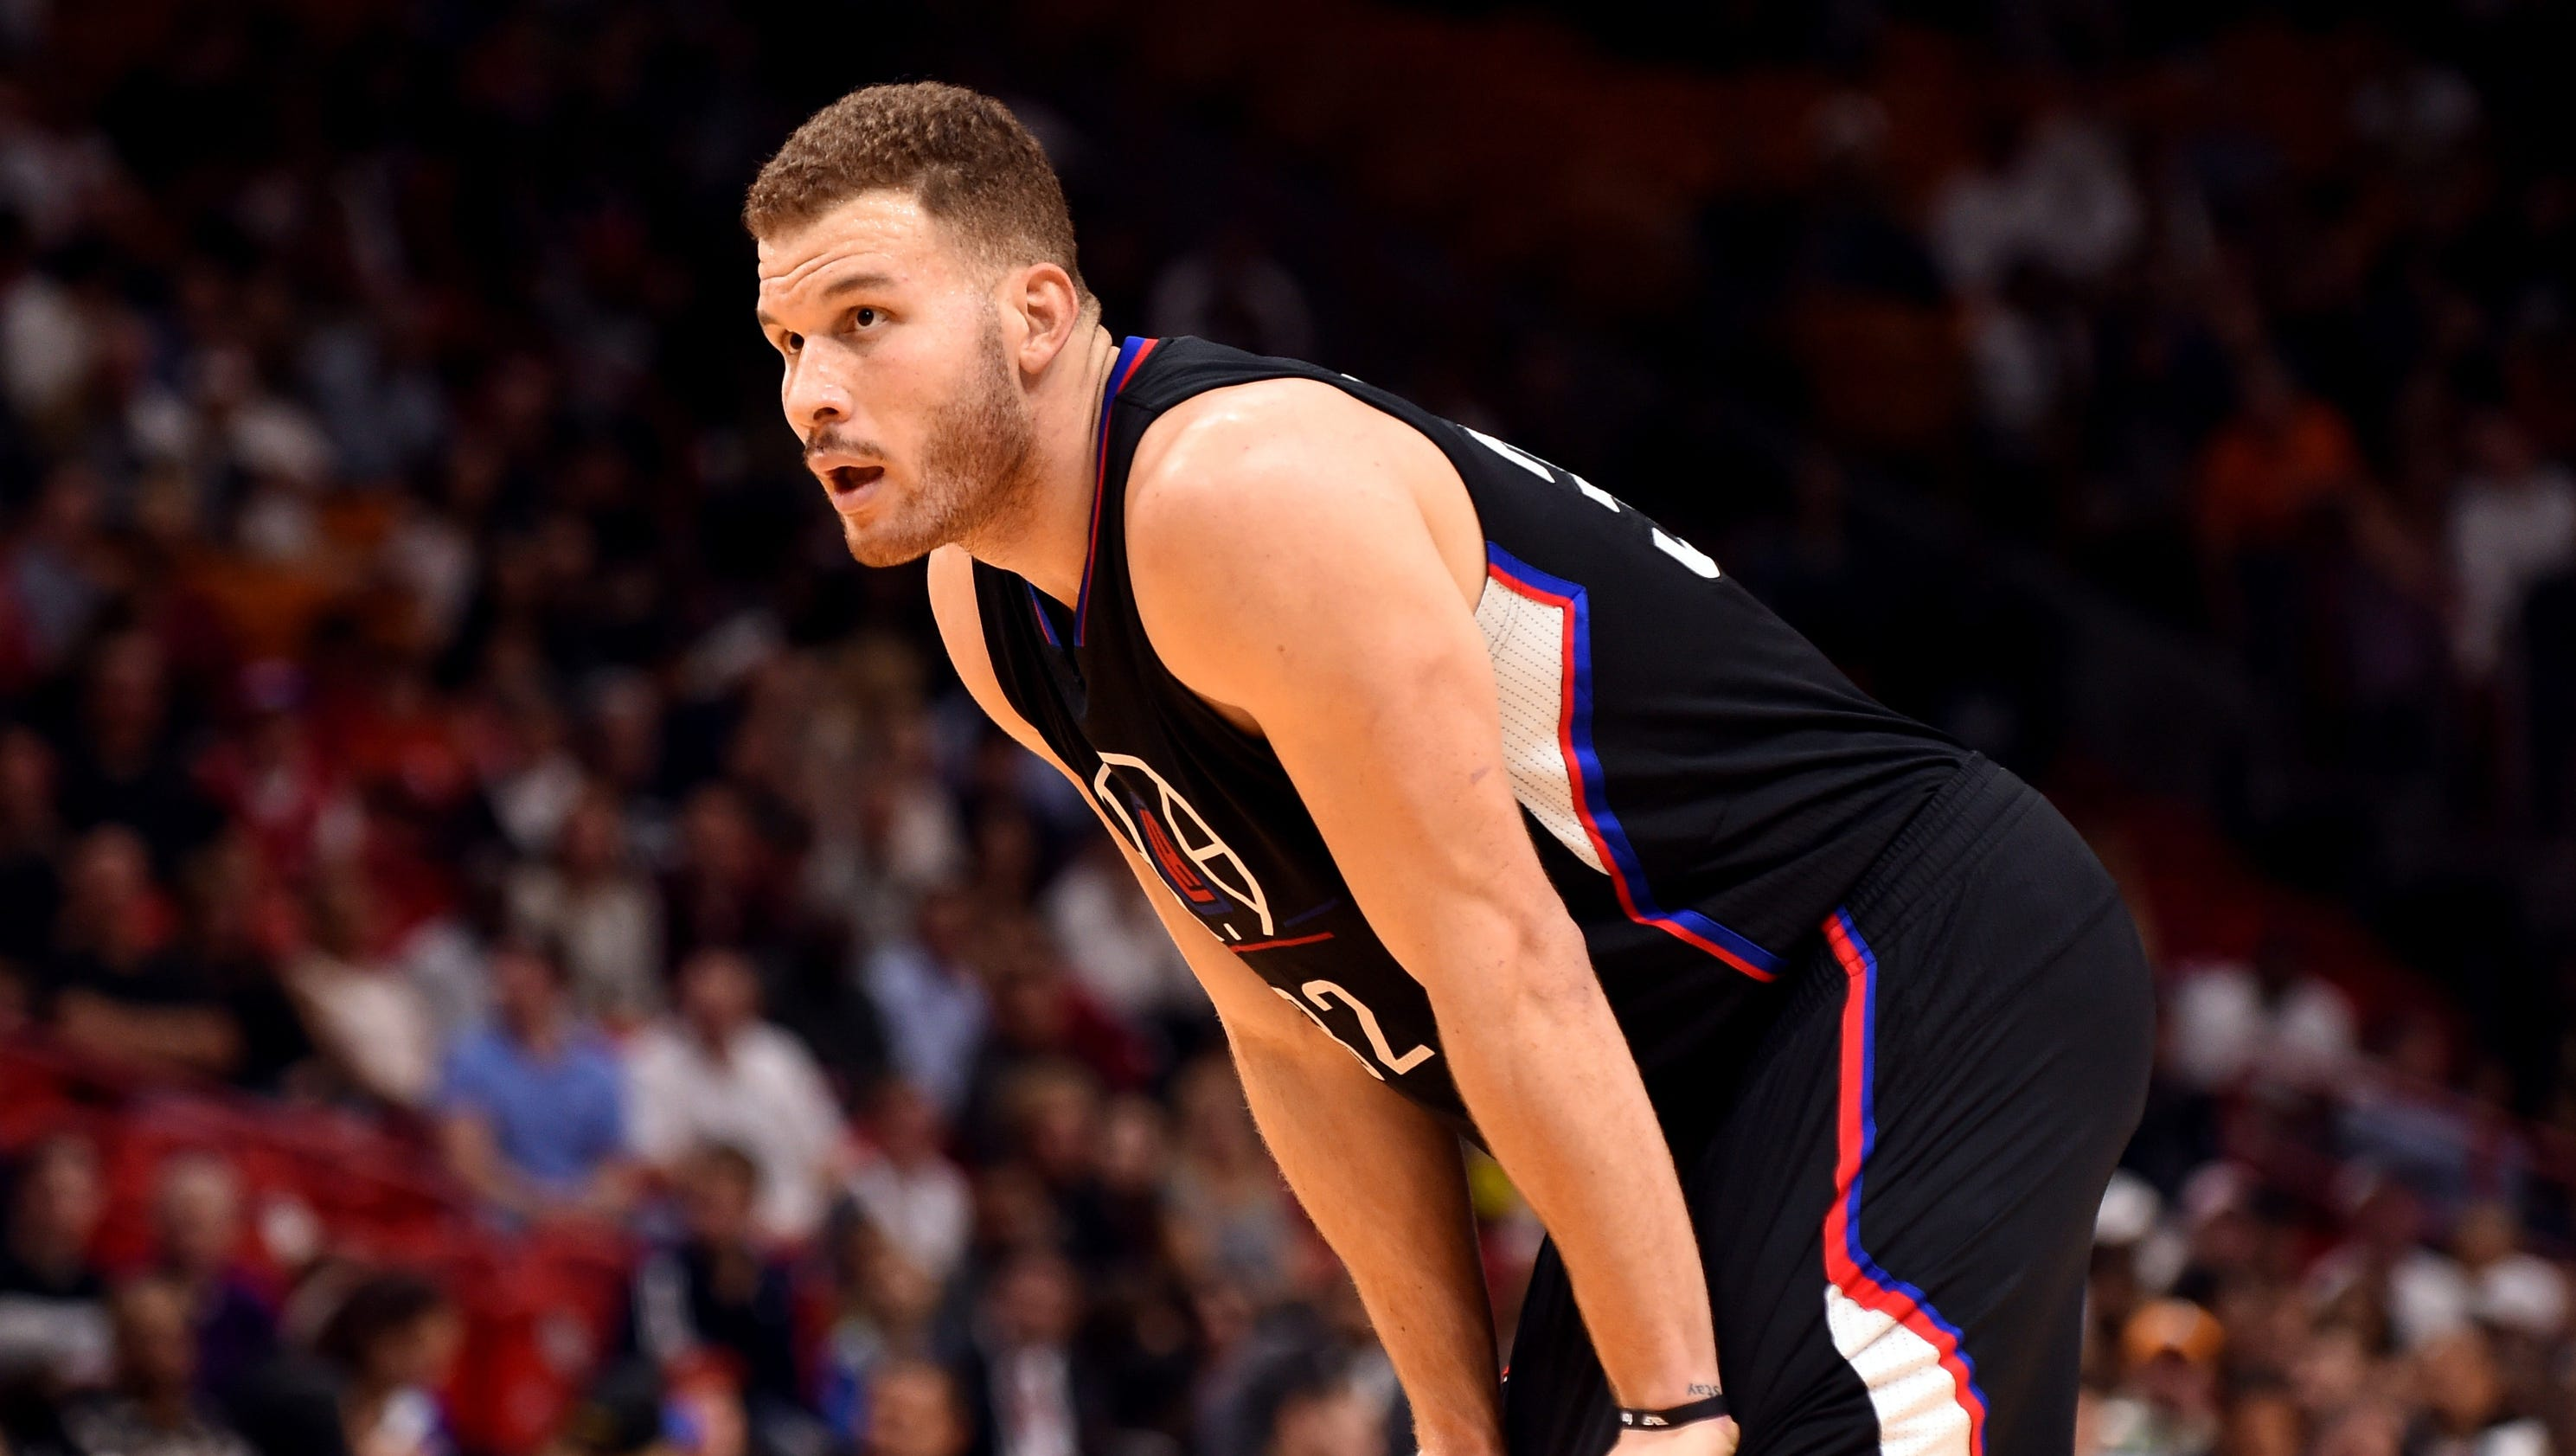 La clippers the impact of blake griffins surgery on the team foxsports com - La Clippers The Impact Of Blake Griffins Surgery On The Team Foxsports Com 7